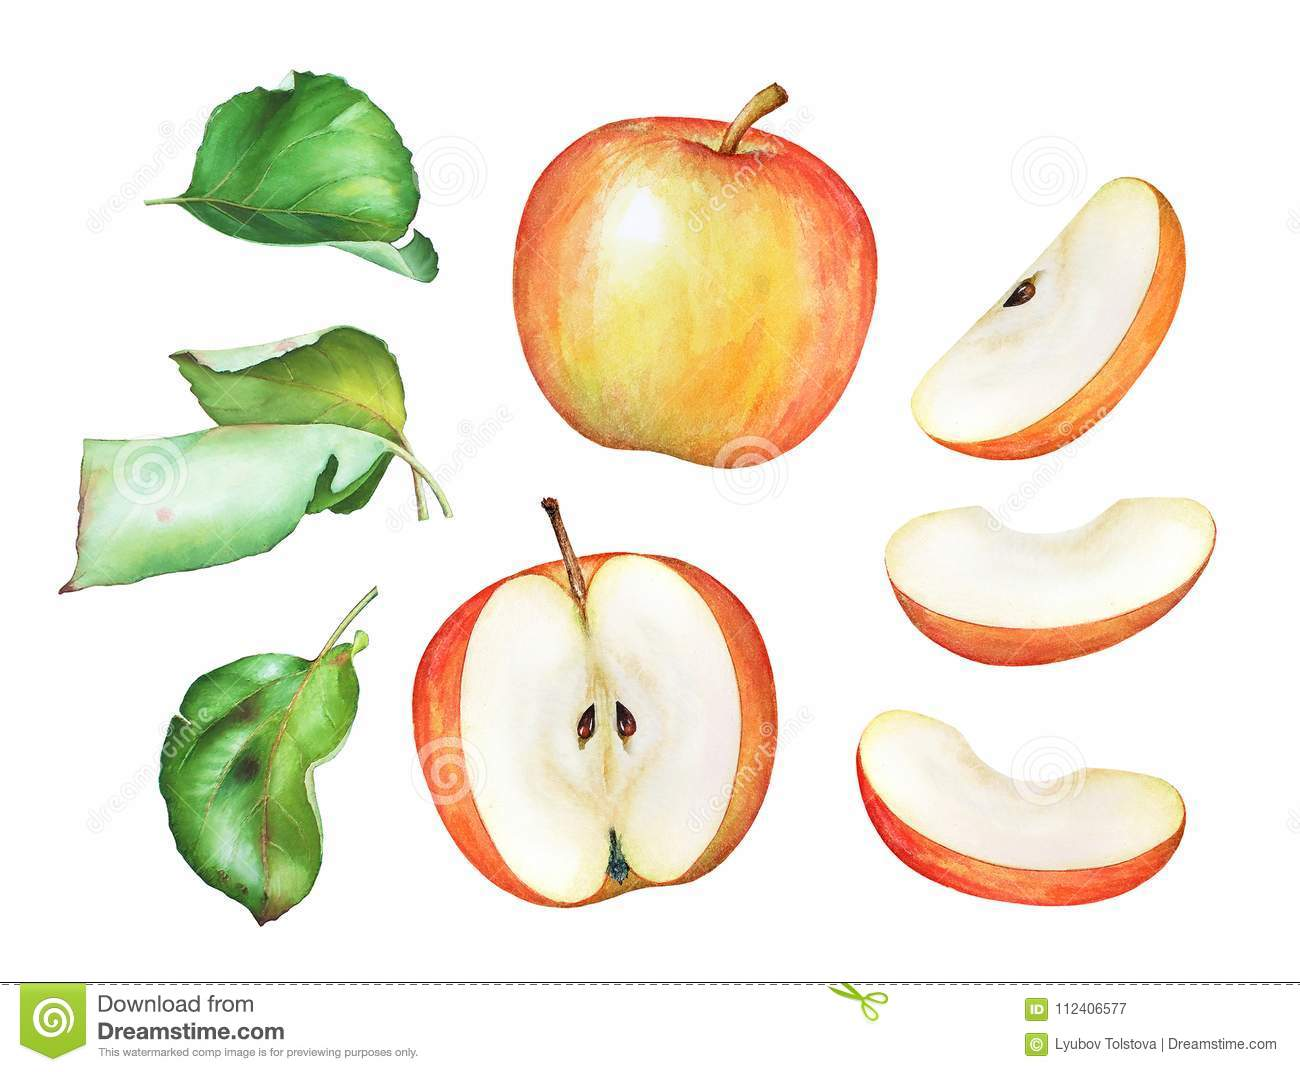 Watercolor illustration of the apples and green leaves